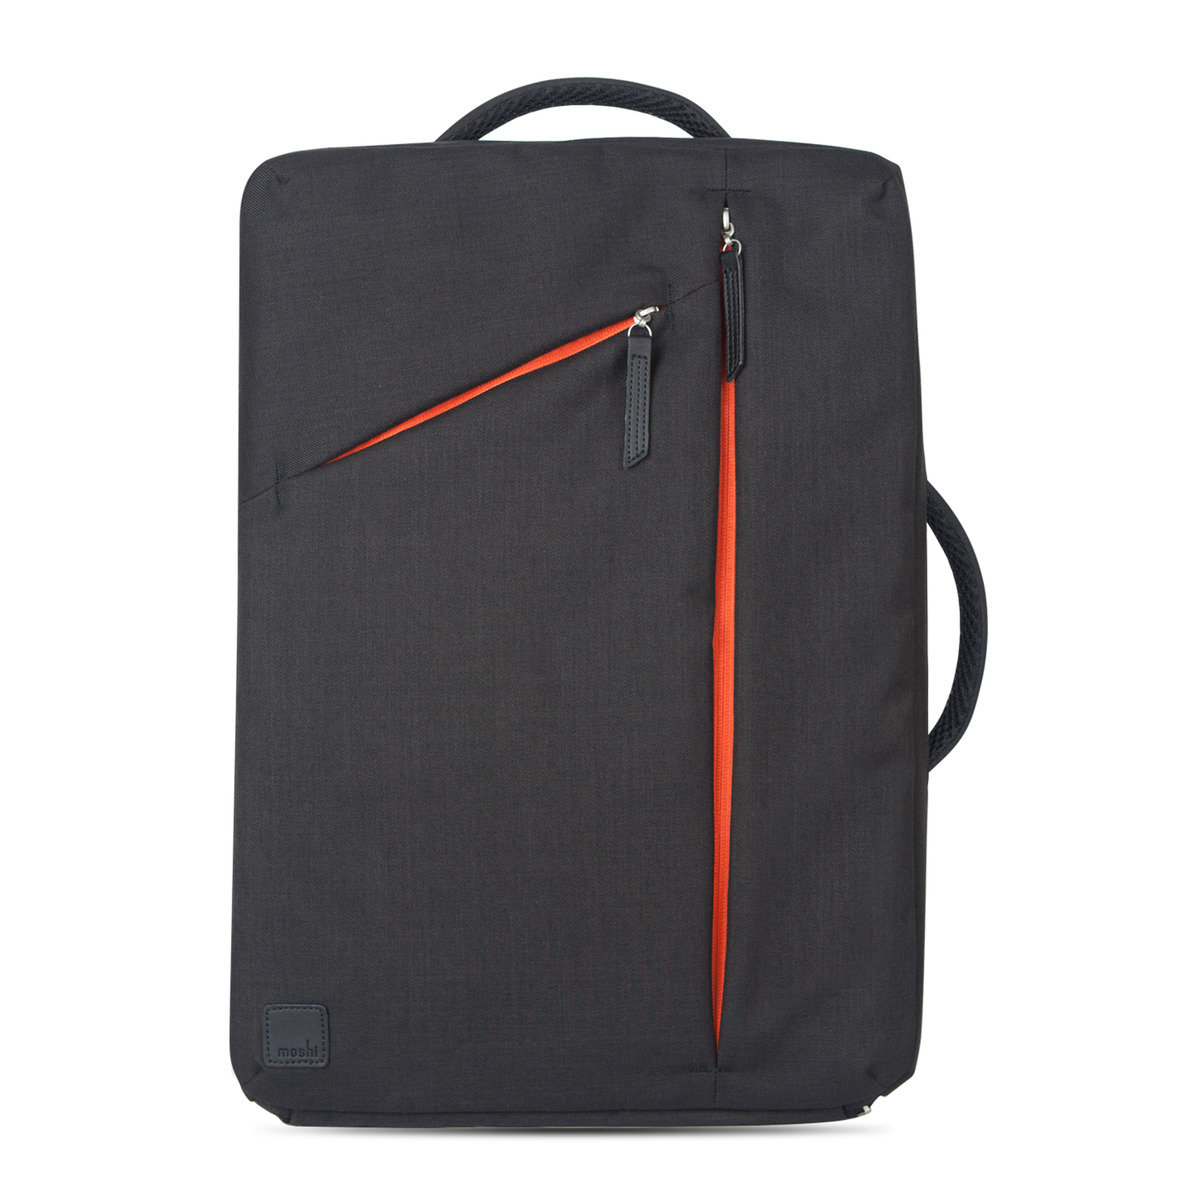 Slim laptop backpack [Black]